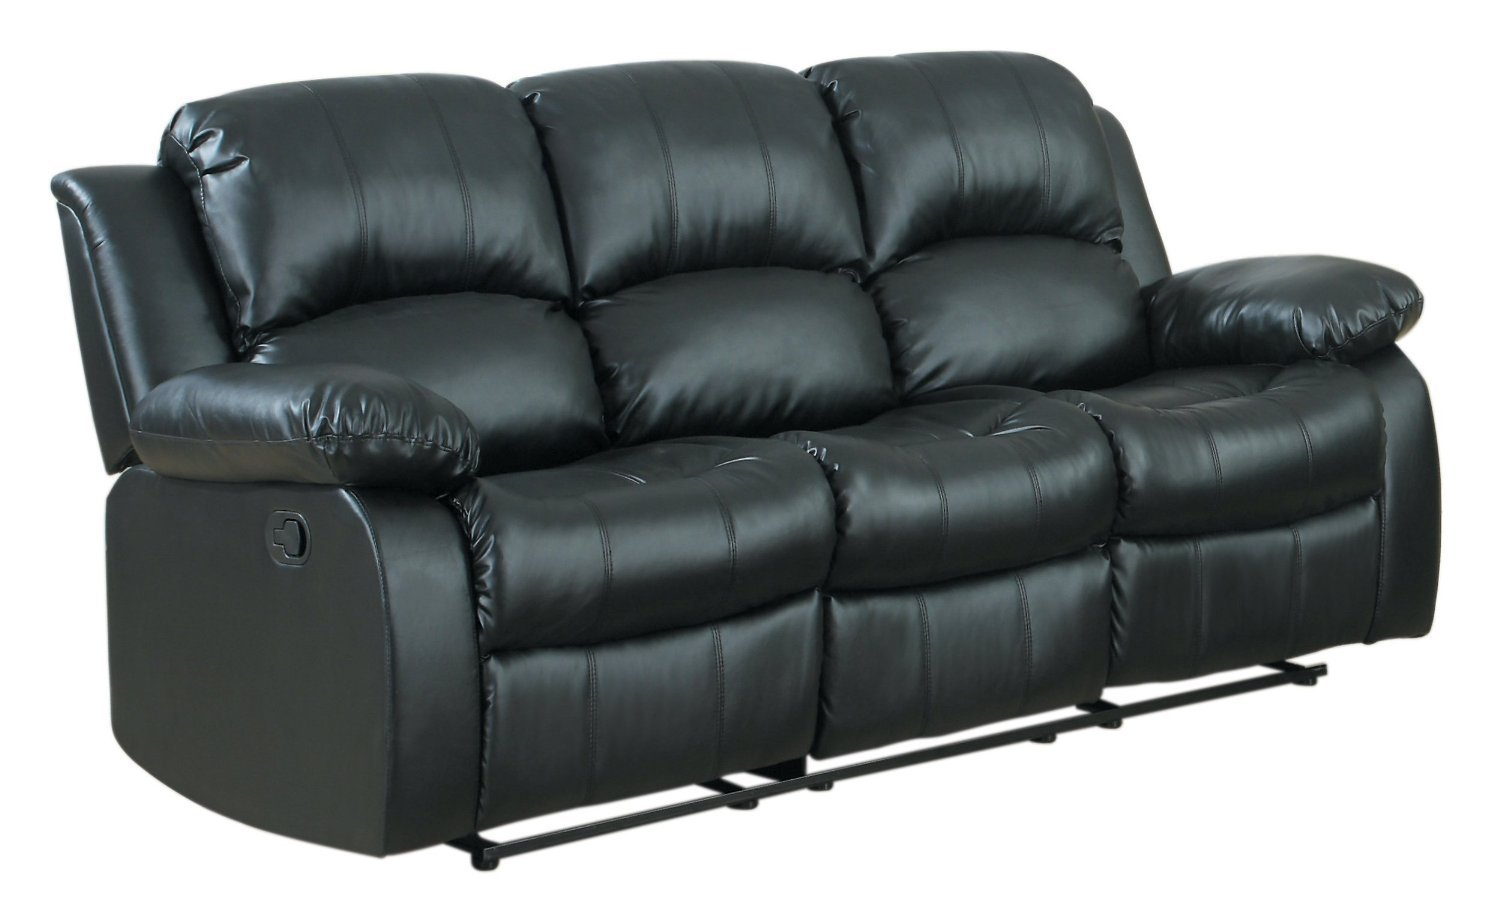 Case Andrea MilanoTM Bonded Leather Double Recliner Sofa